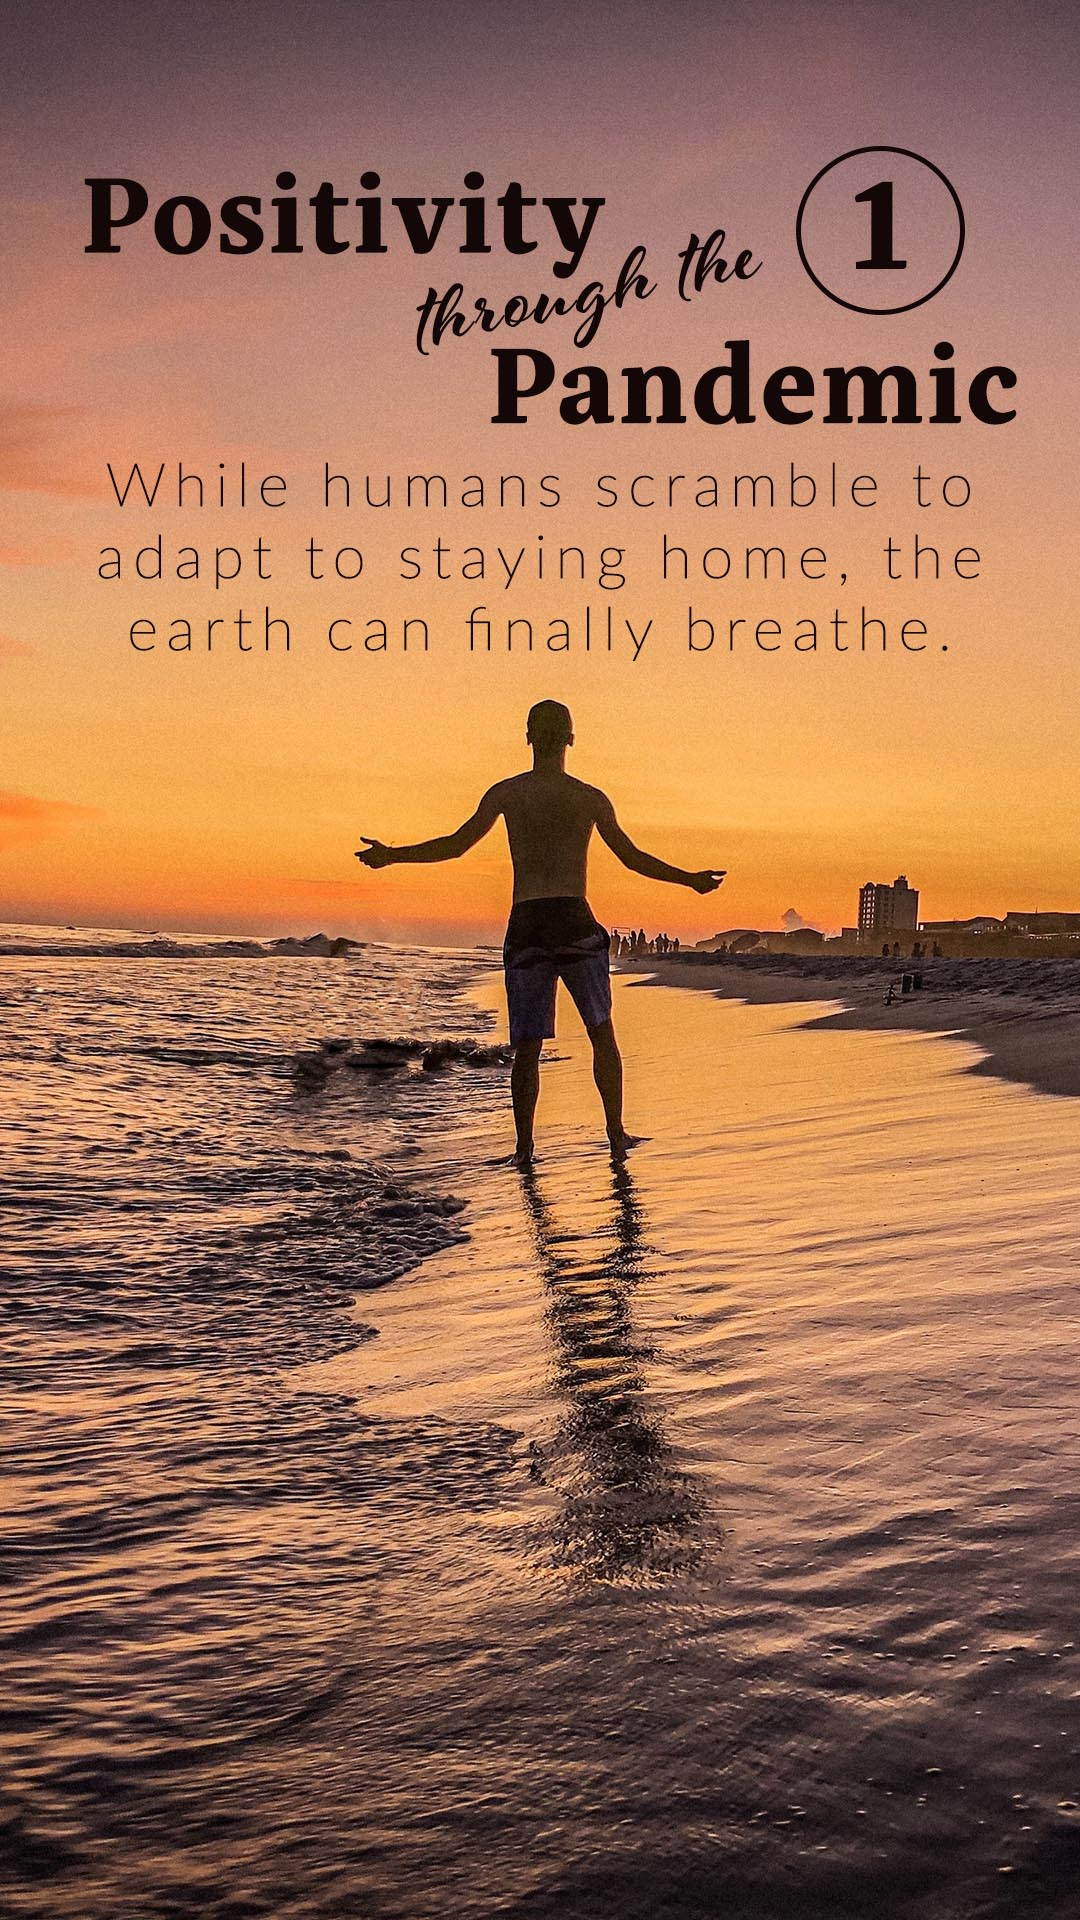 Positivity through the Pandemic #1: While humans scramble to adapt to staying home, the earth can finally breathe